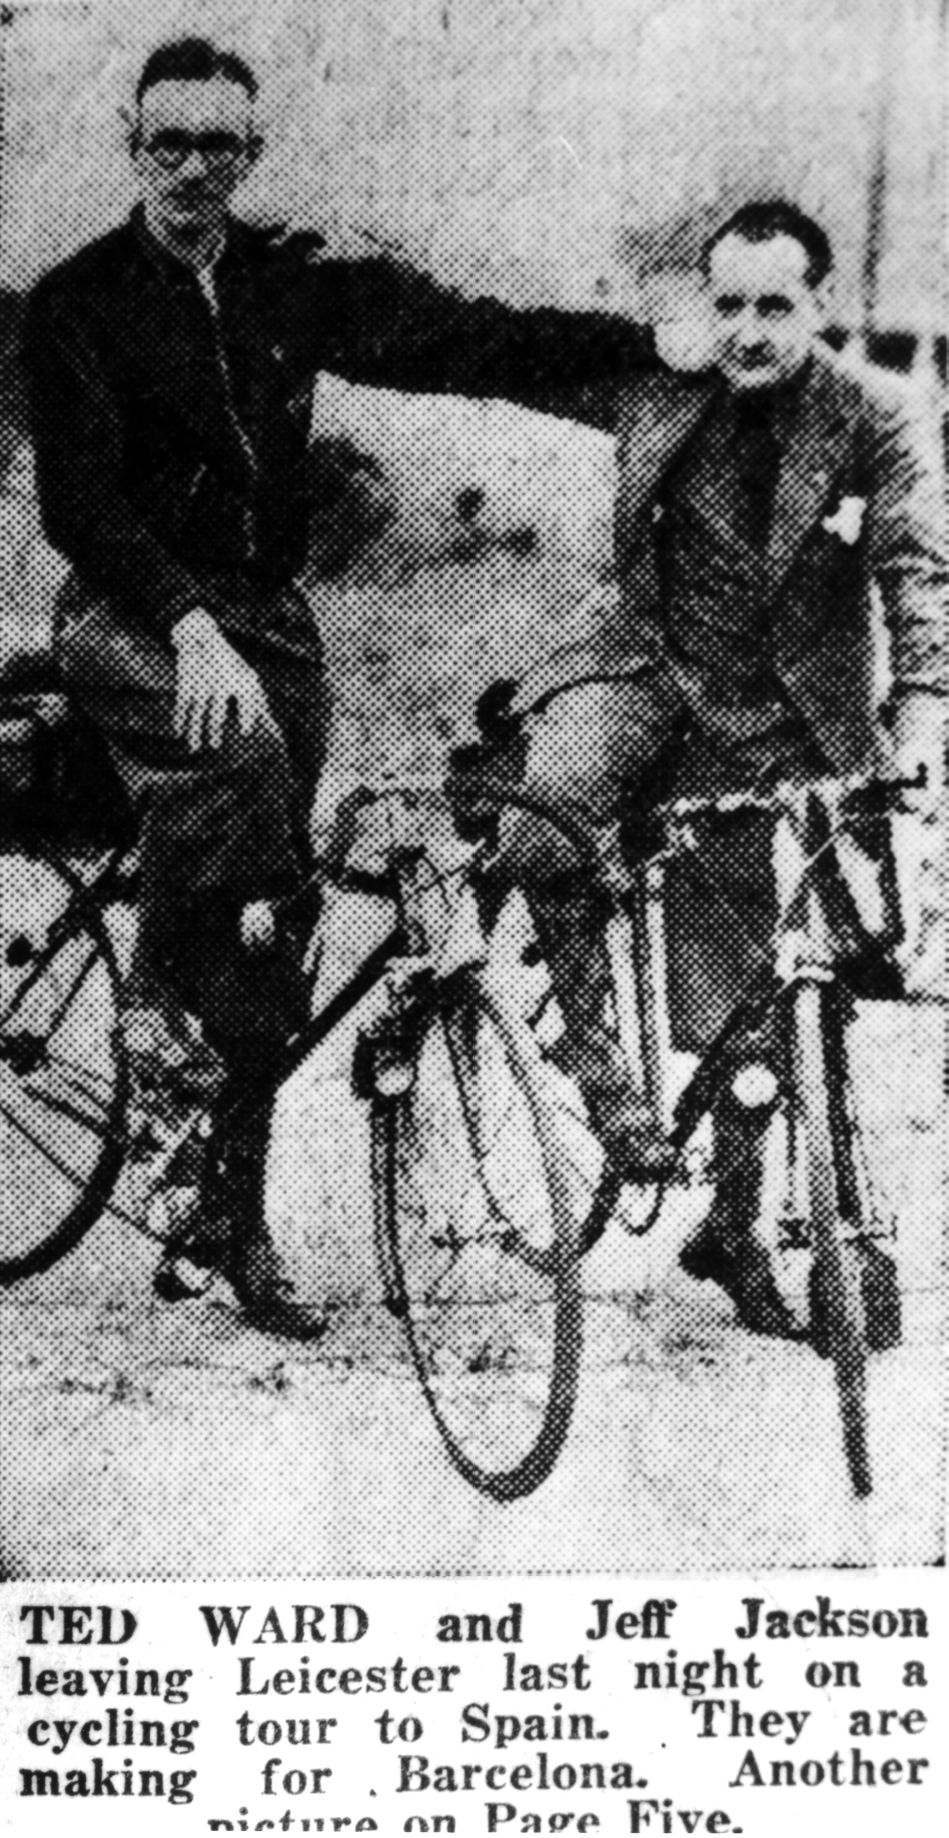 Ted Ward and Geoff jackson on their original ride in may 1938 passing through Leicester